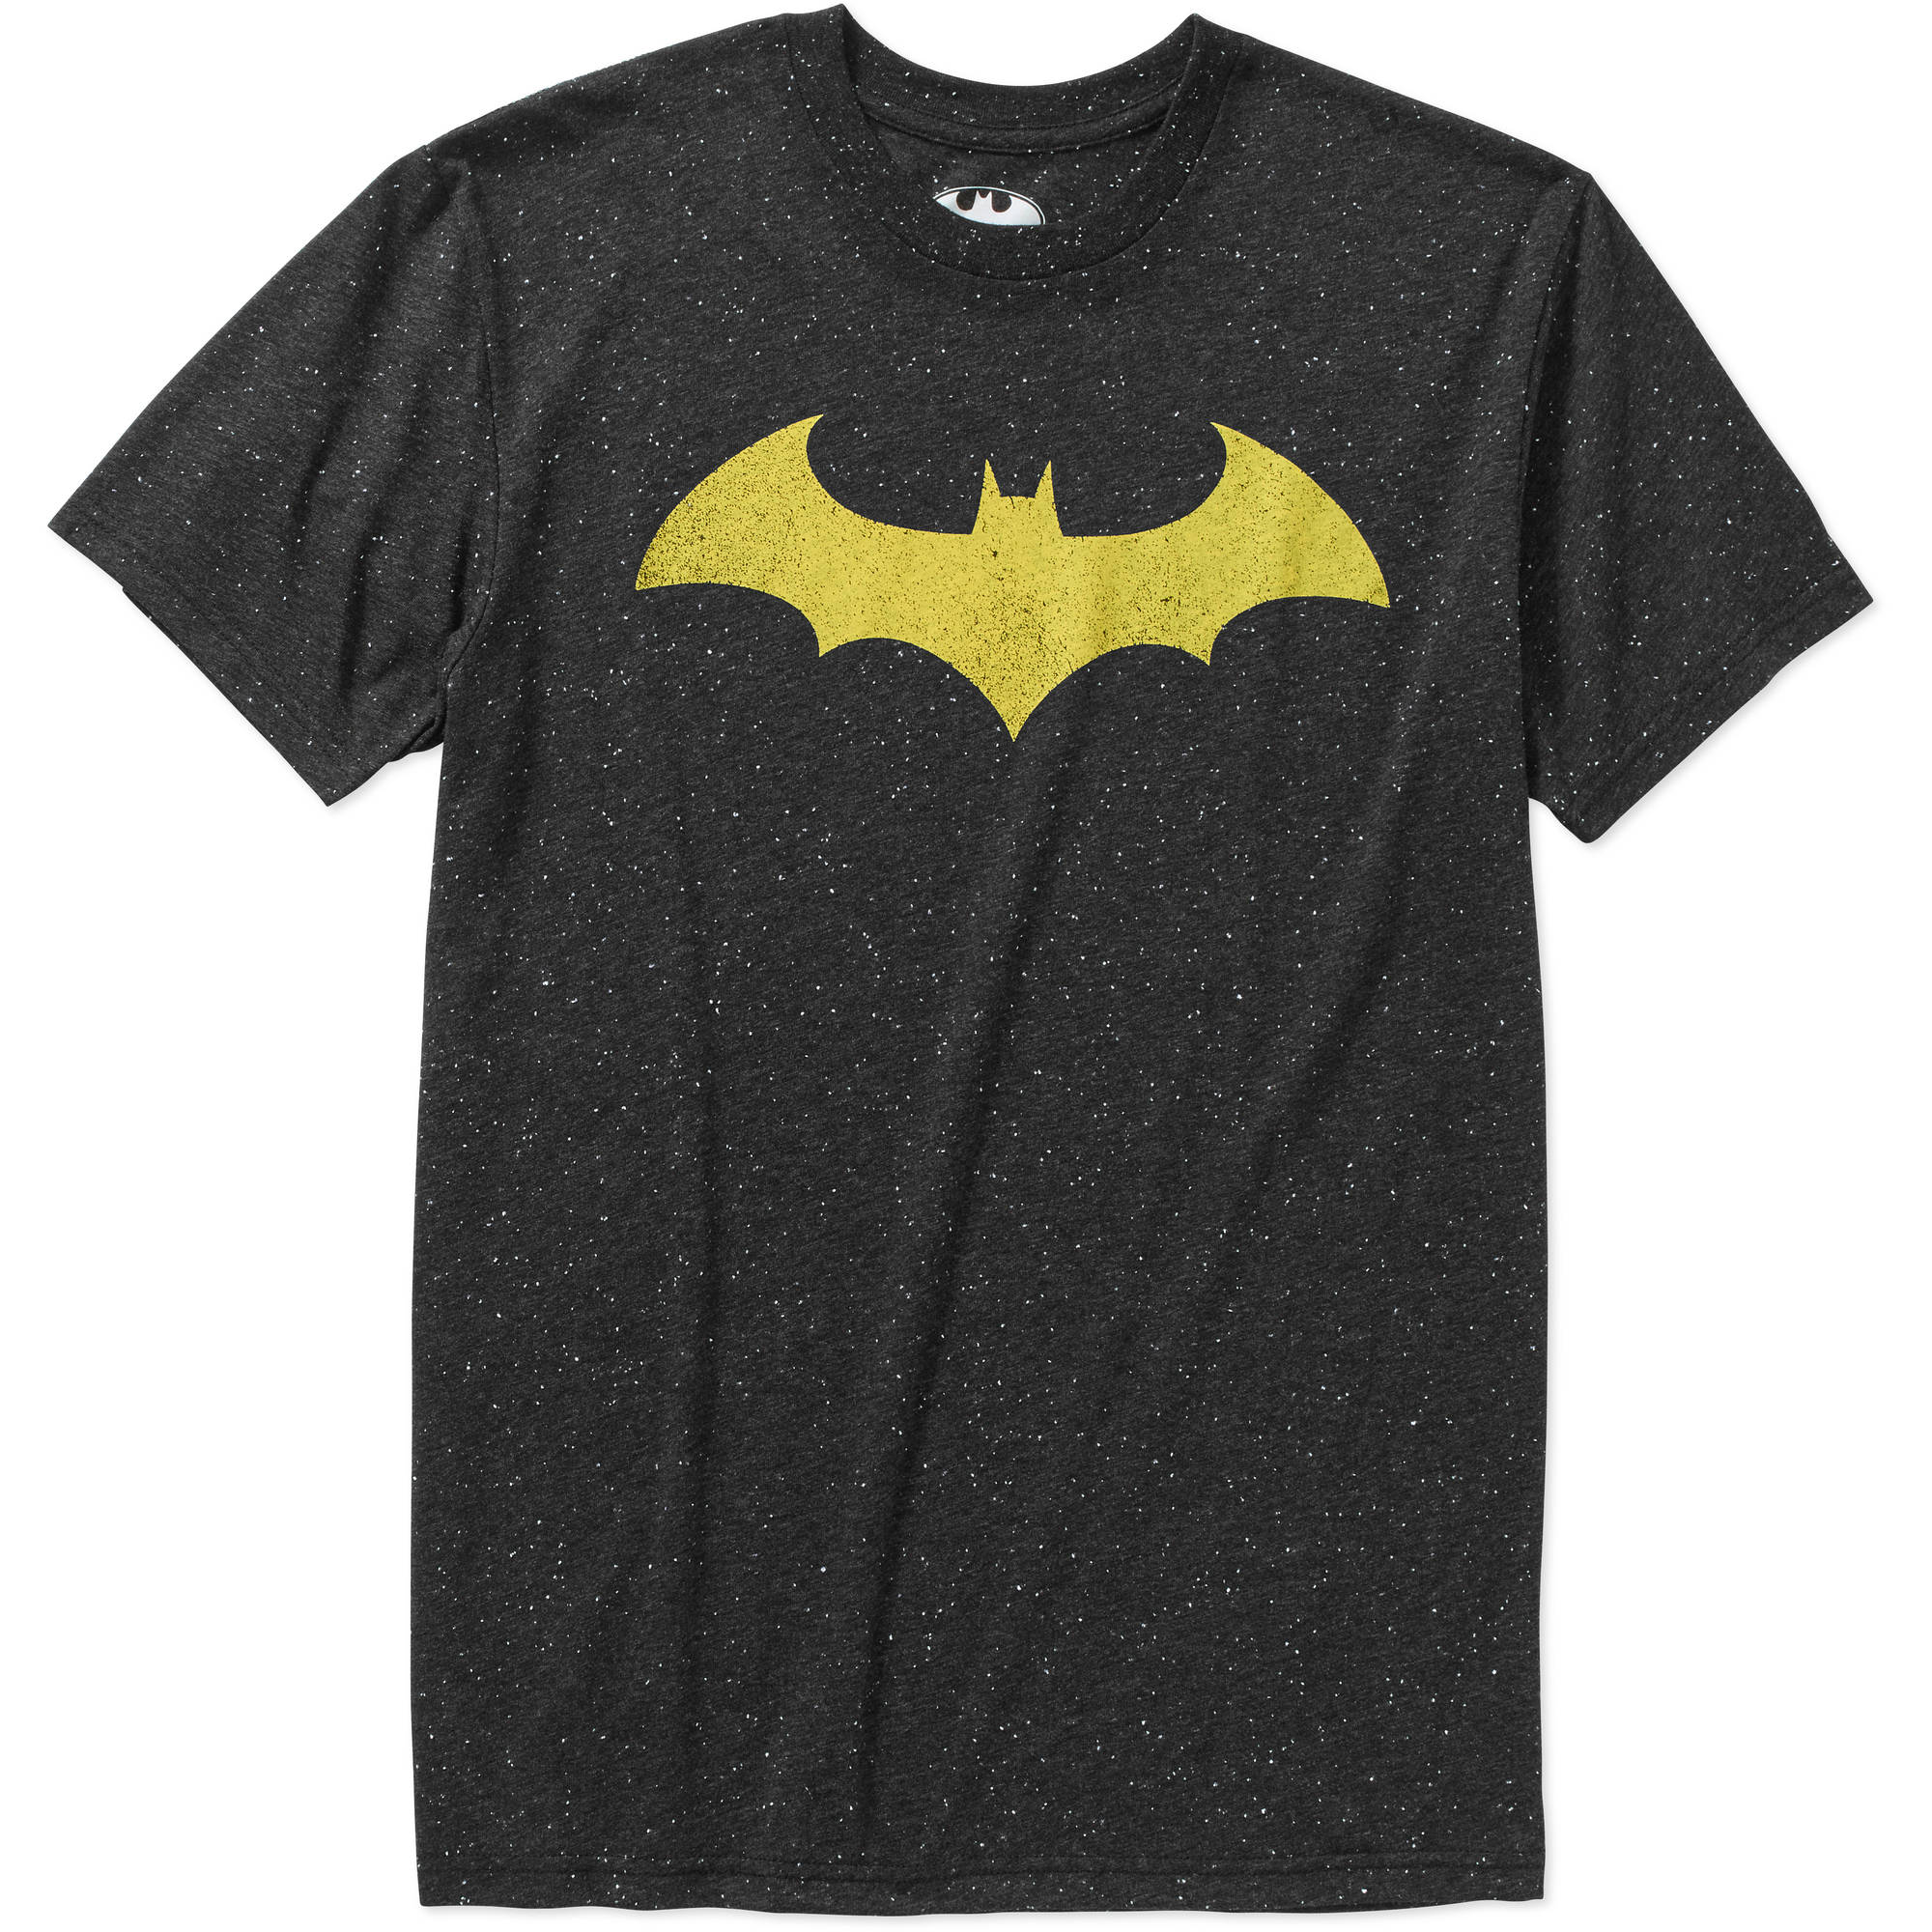 Batman logo Big Men's burnout graphic tee, 2xl